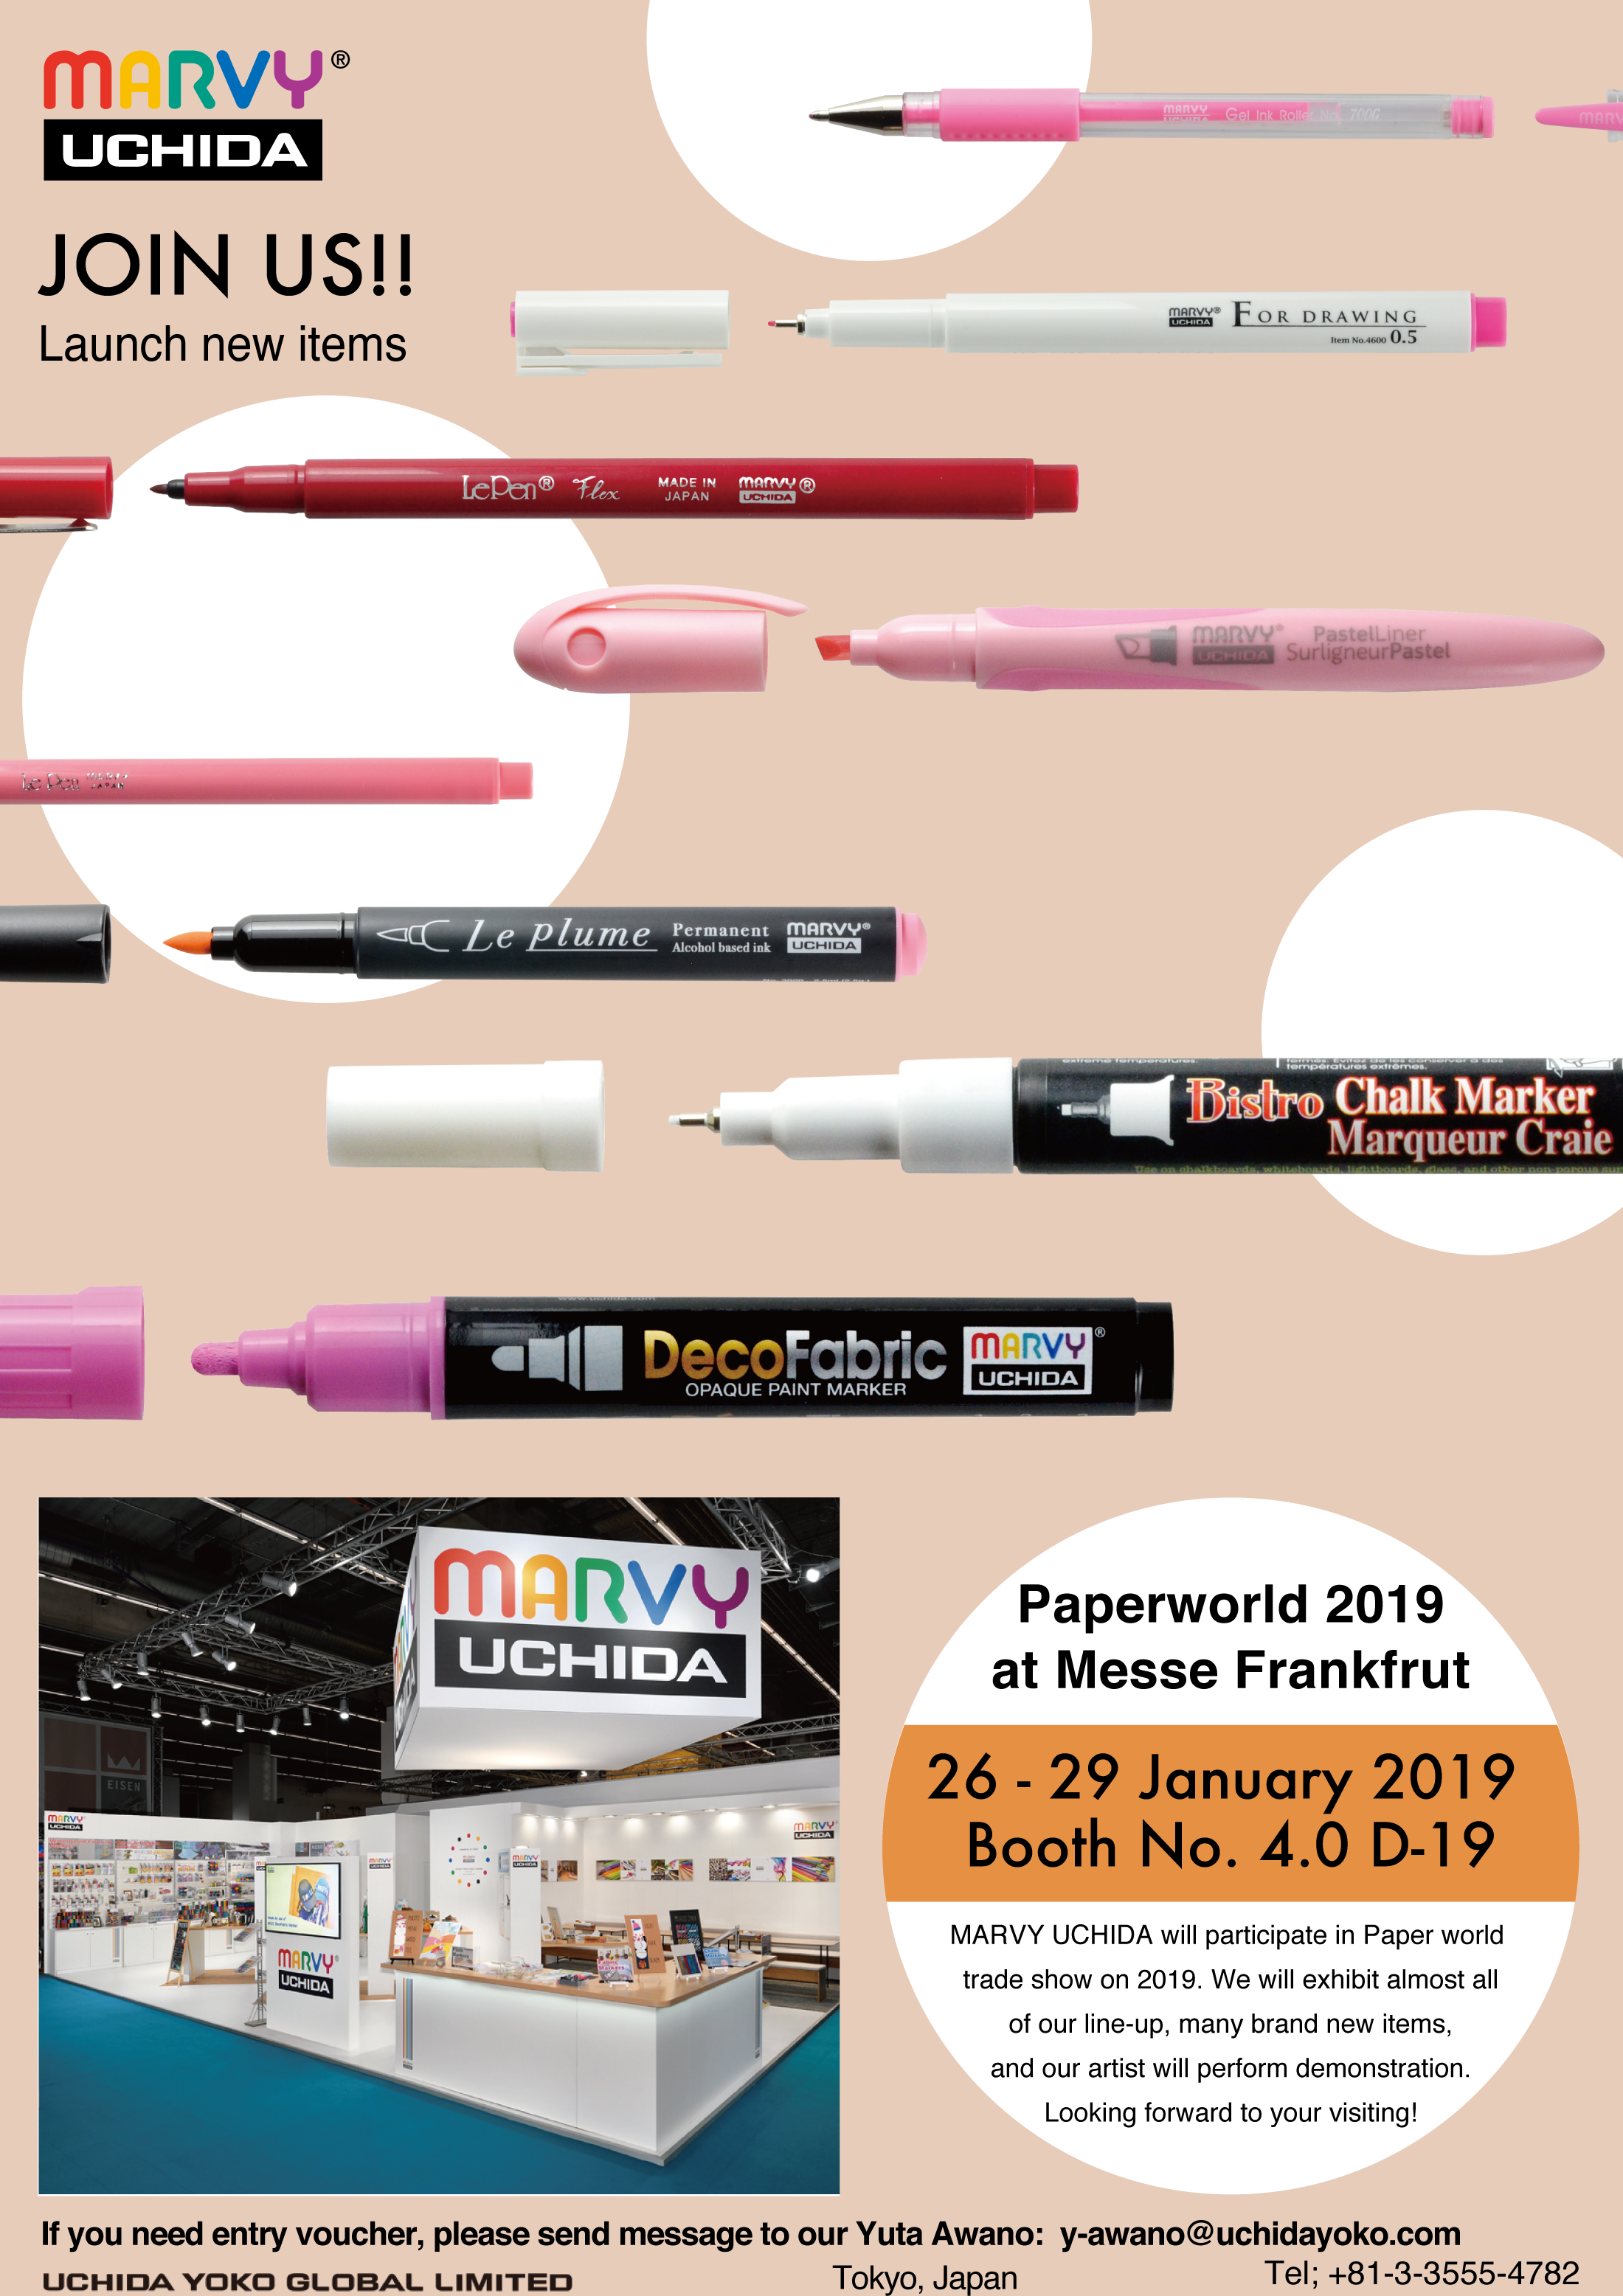 We will be exhibiting at Paperworld 2019 in Frankfurt, Germany